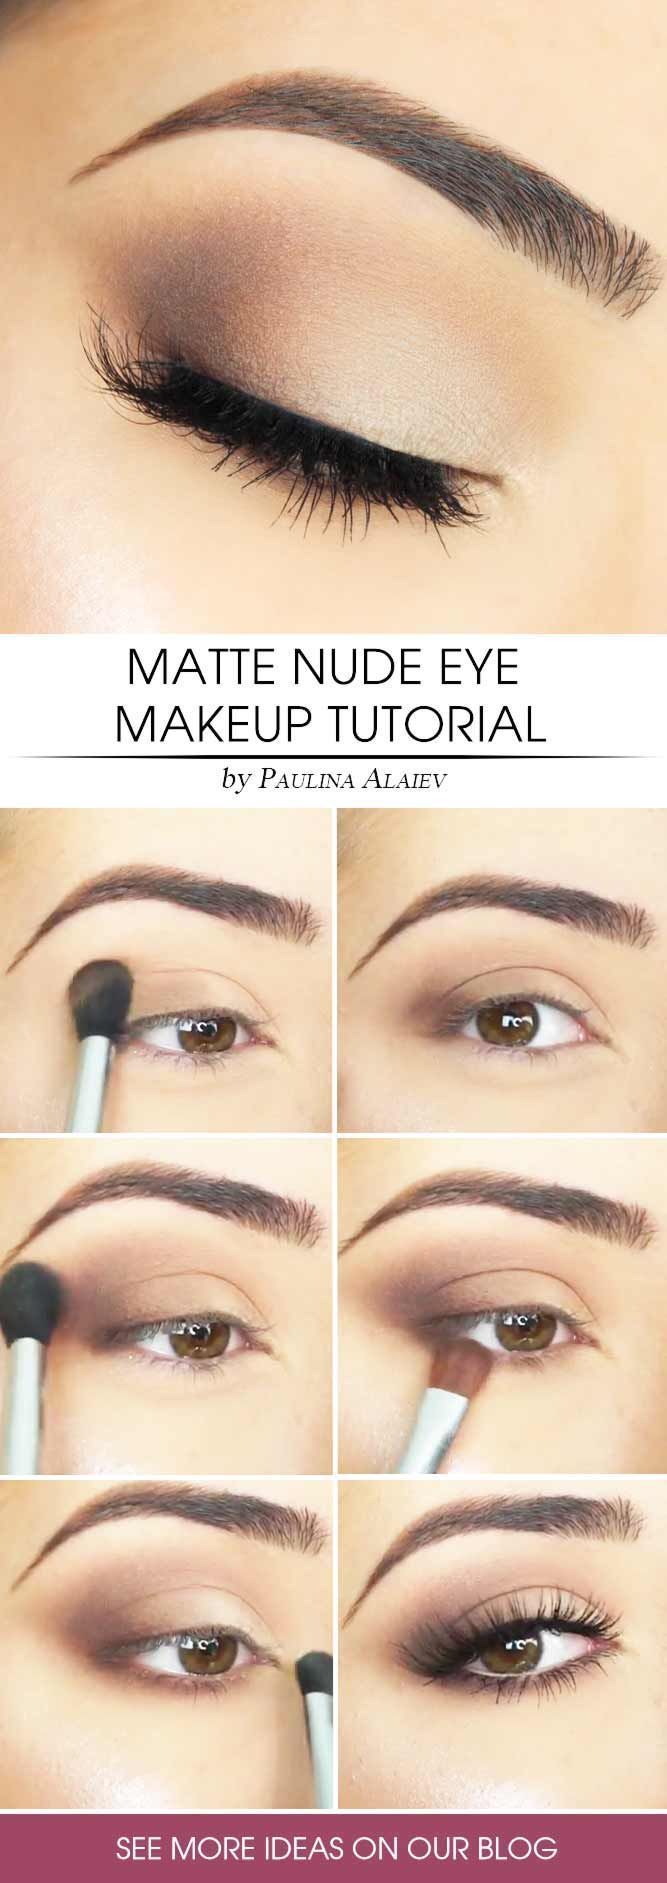 Matte Eyes Makeup Tutorial #eyesmakeup Nude makeup ideas for natural looks in a simple step by step tutorial with lipstick, eyeliner, and contours. #nudemakeup #everydaymakeup #makeup